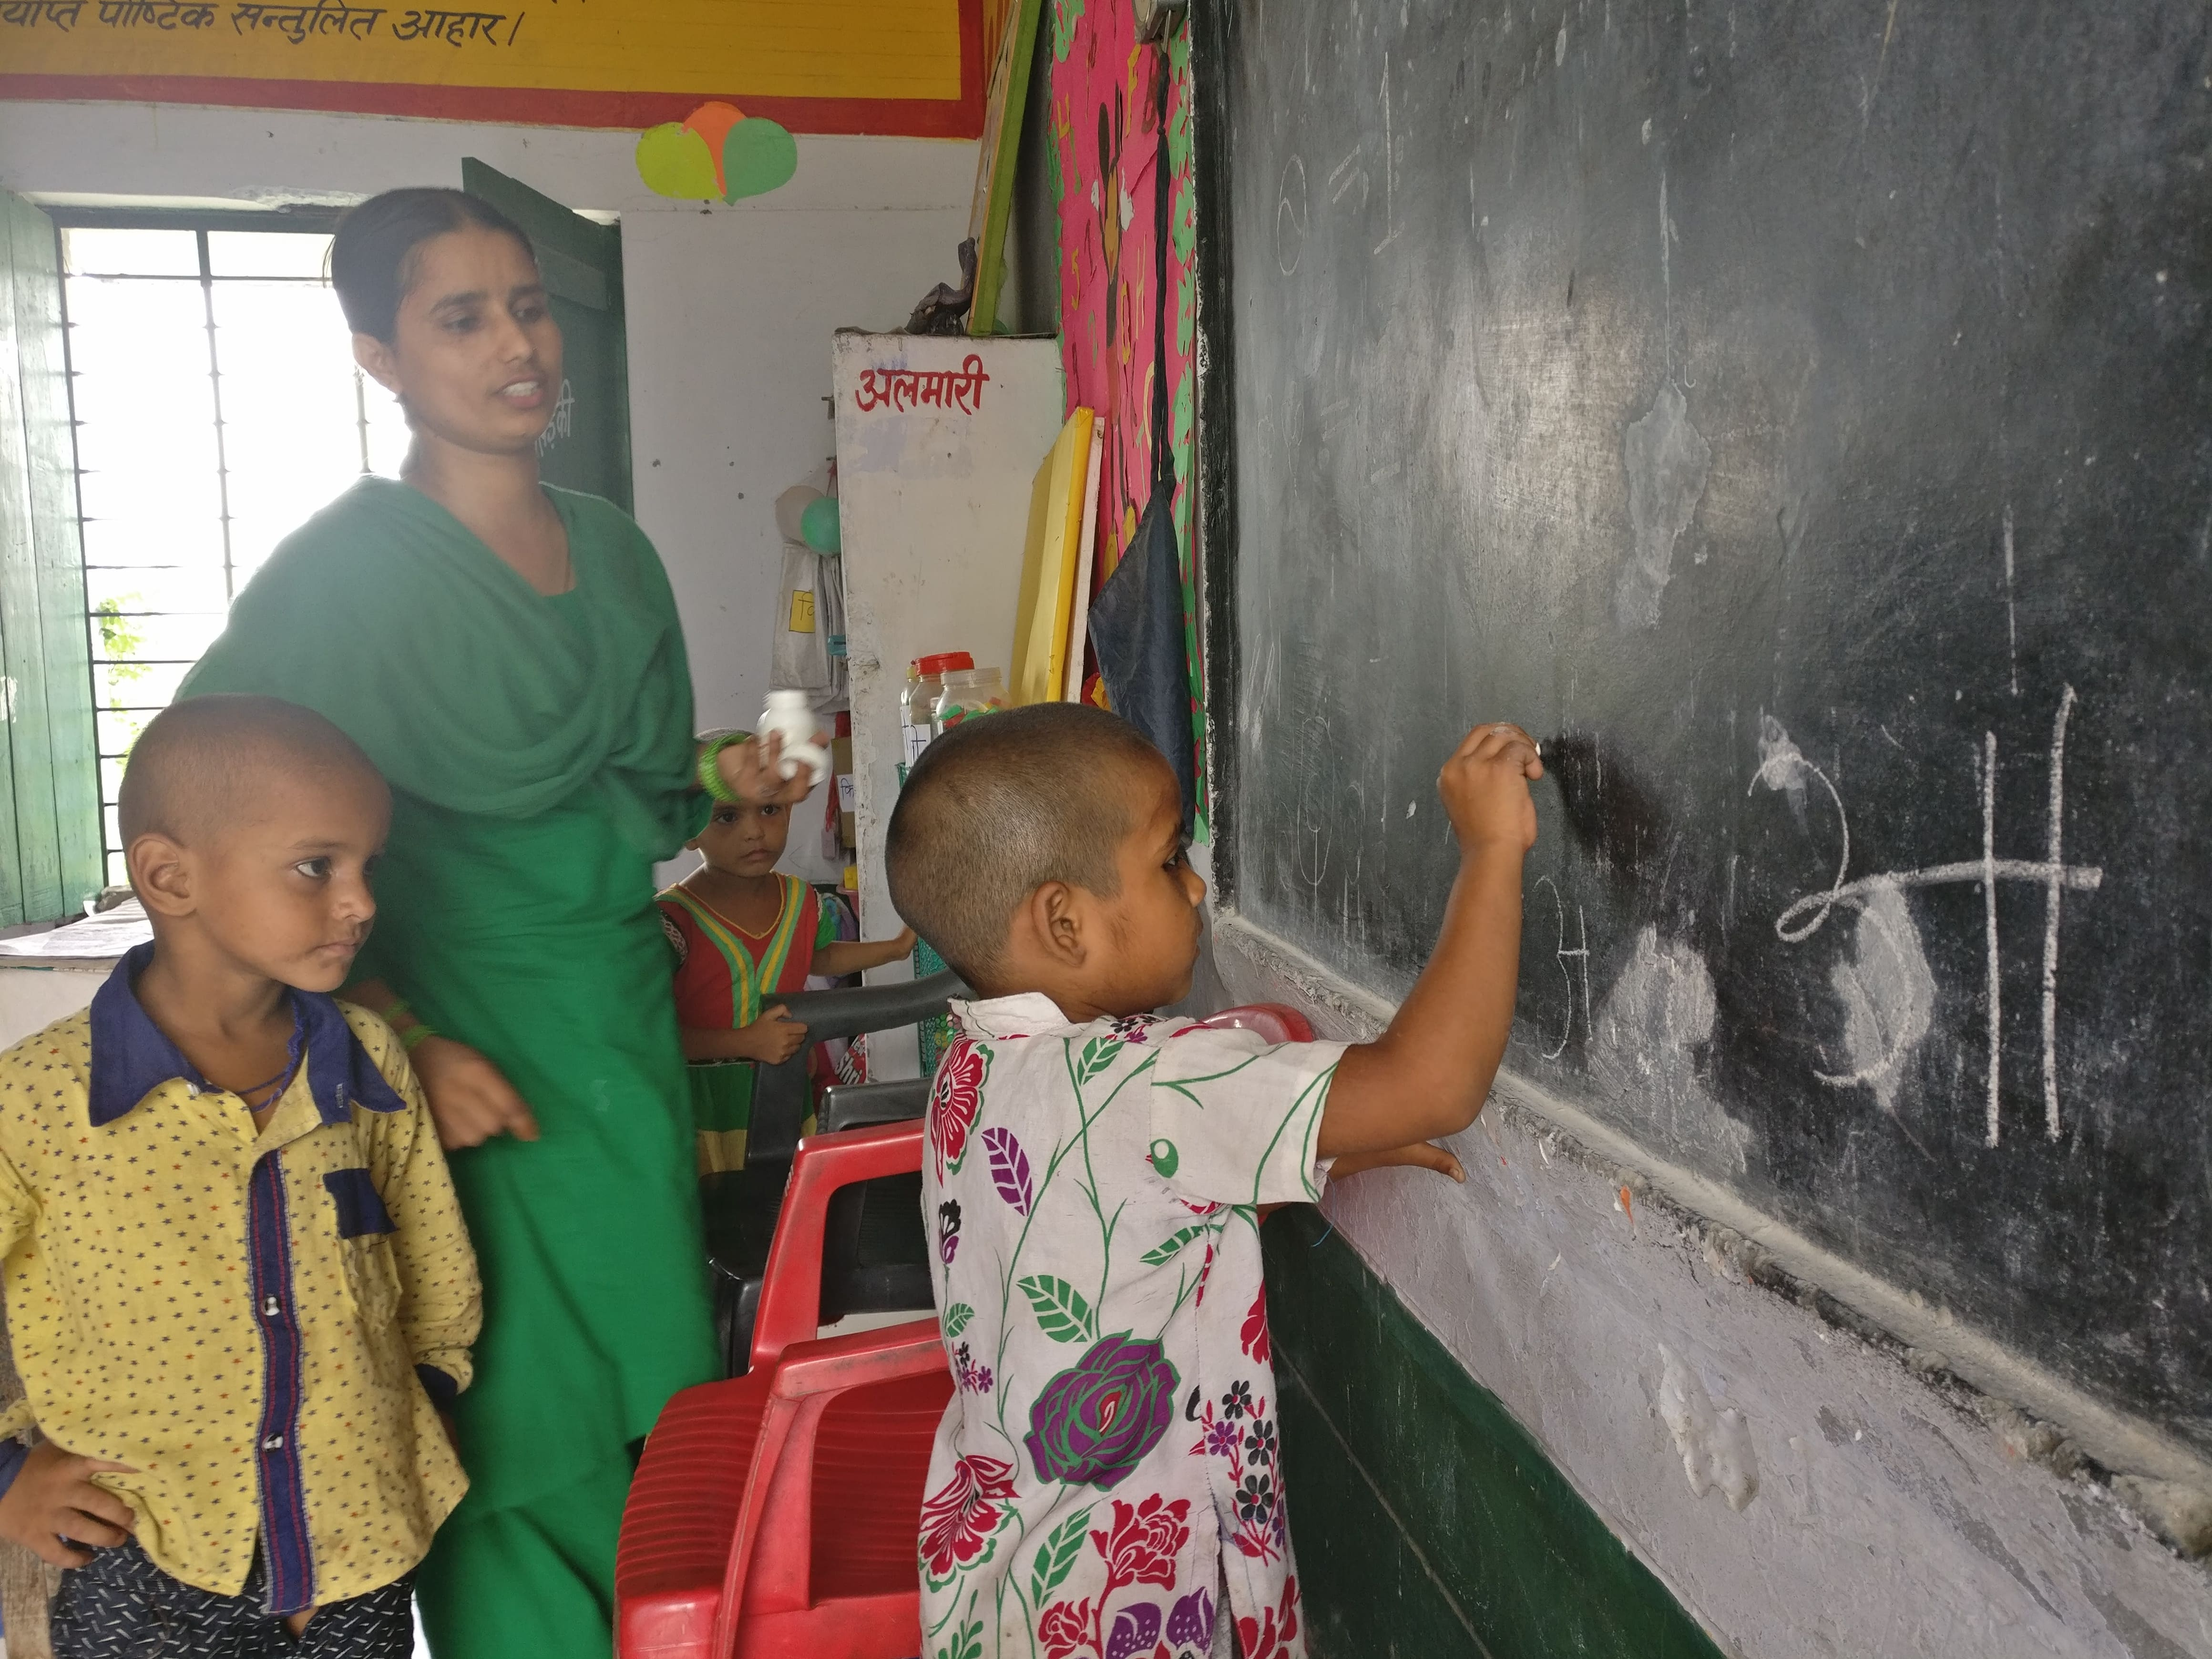 Anganwadi worker Shabana Parveen watches Sophia, 5, write. Sophia only knows the first few letters of the Hindi alphabet. Photo credit: Shreya Roy Chowdhury